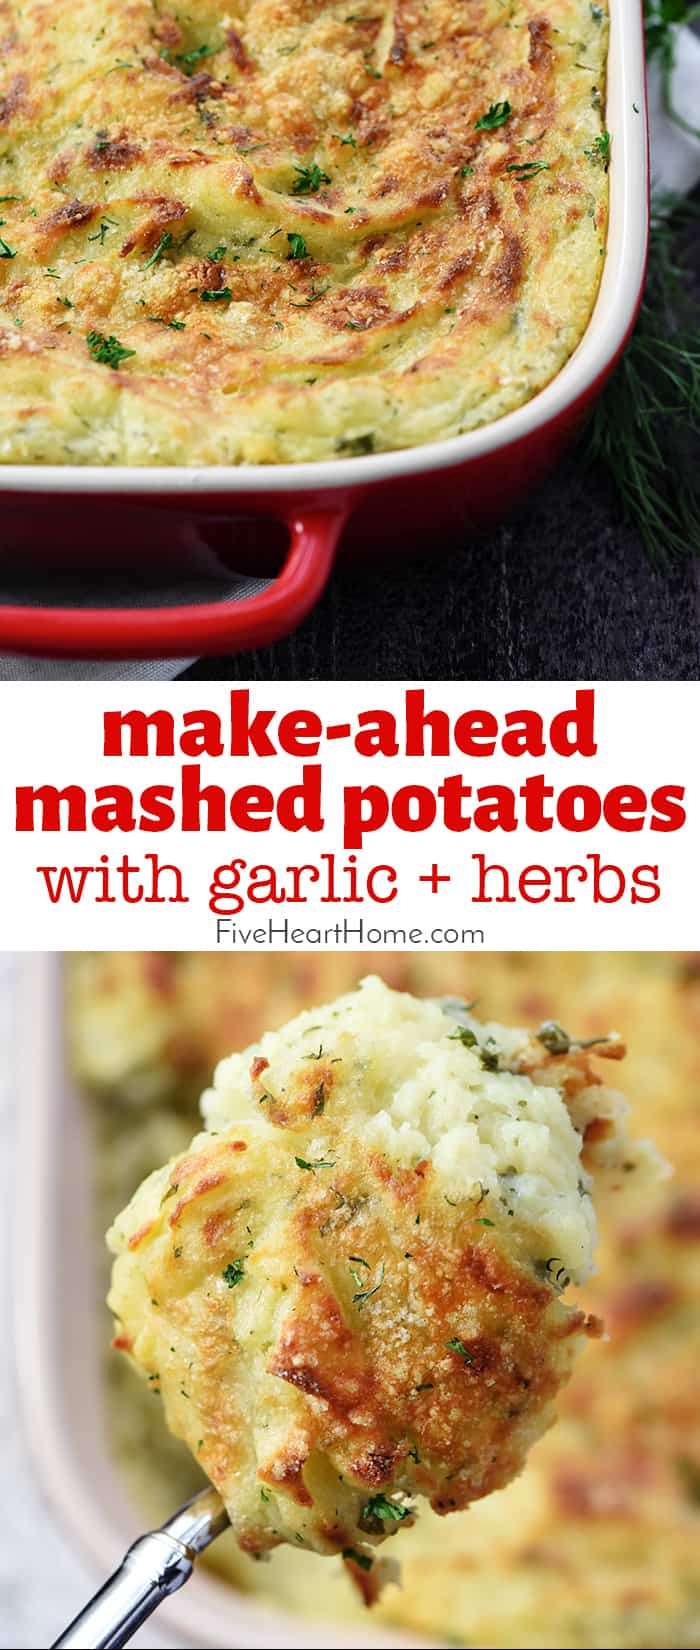 Make-Ahead Mashed Potatoes with Garlic & Herbs ~ a creamy, decadent holiday side dish loaded with mellow garlic & fresh herbs and topped with a golden Parmesan crust...perfect for Thanksgiving, Christmas, Easter, or entertaining company! | FiveHeartHome.com via @fivehearthome